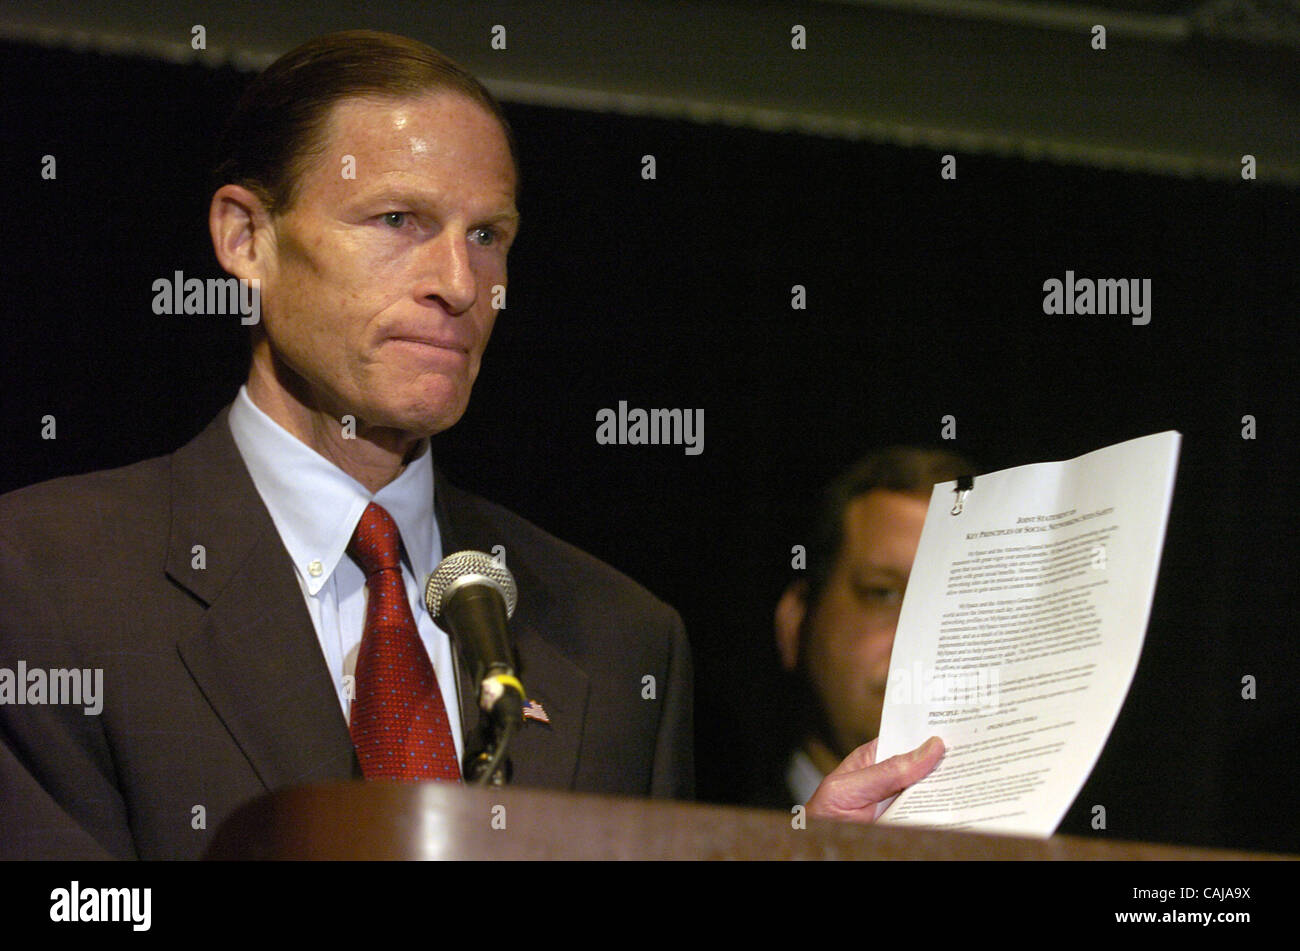 Connecticut Attorney General Richard Blumenthal speaking at the press conference. In a joint effort to increase - Stock Image